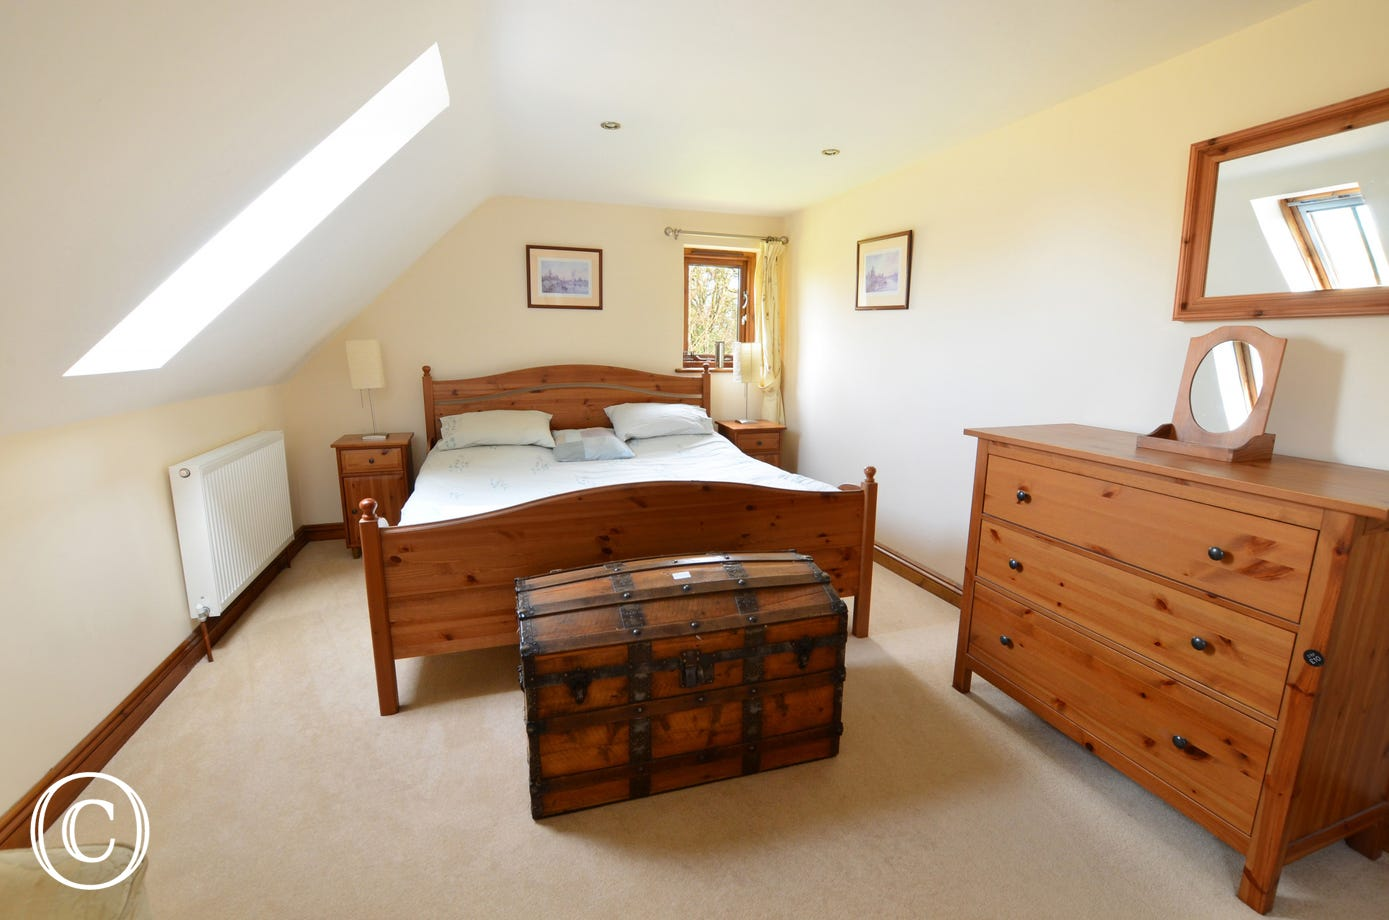 This double room has a sloping ceiling with a velux window and is a bright and airy